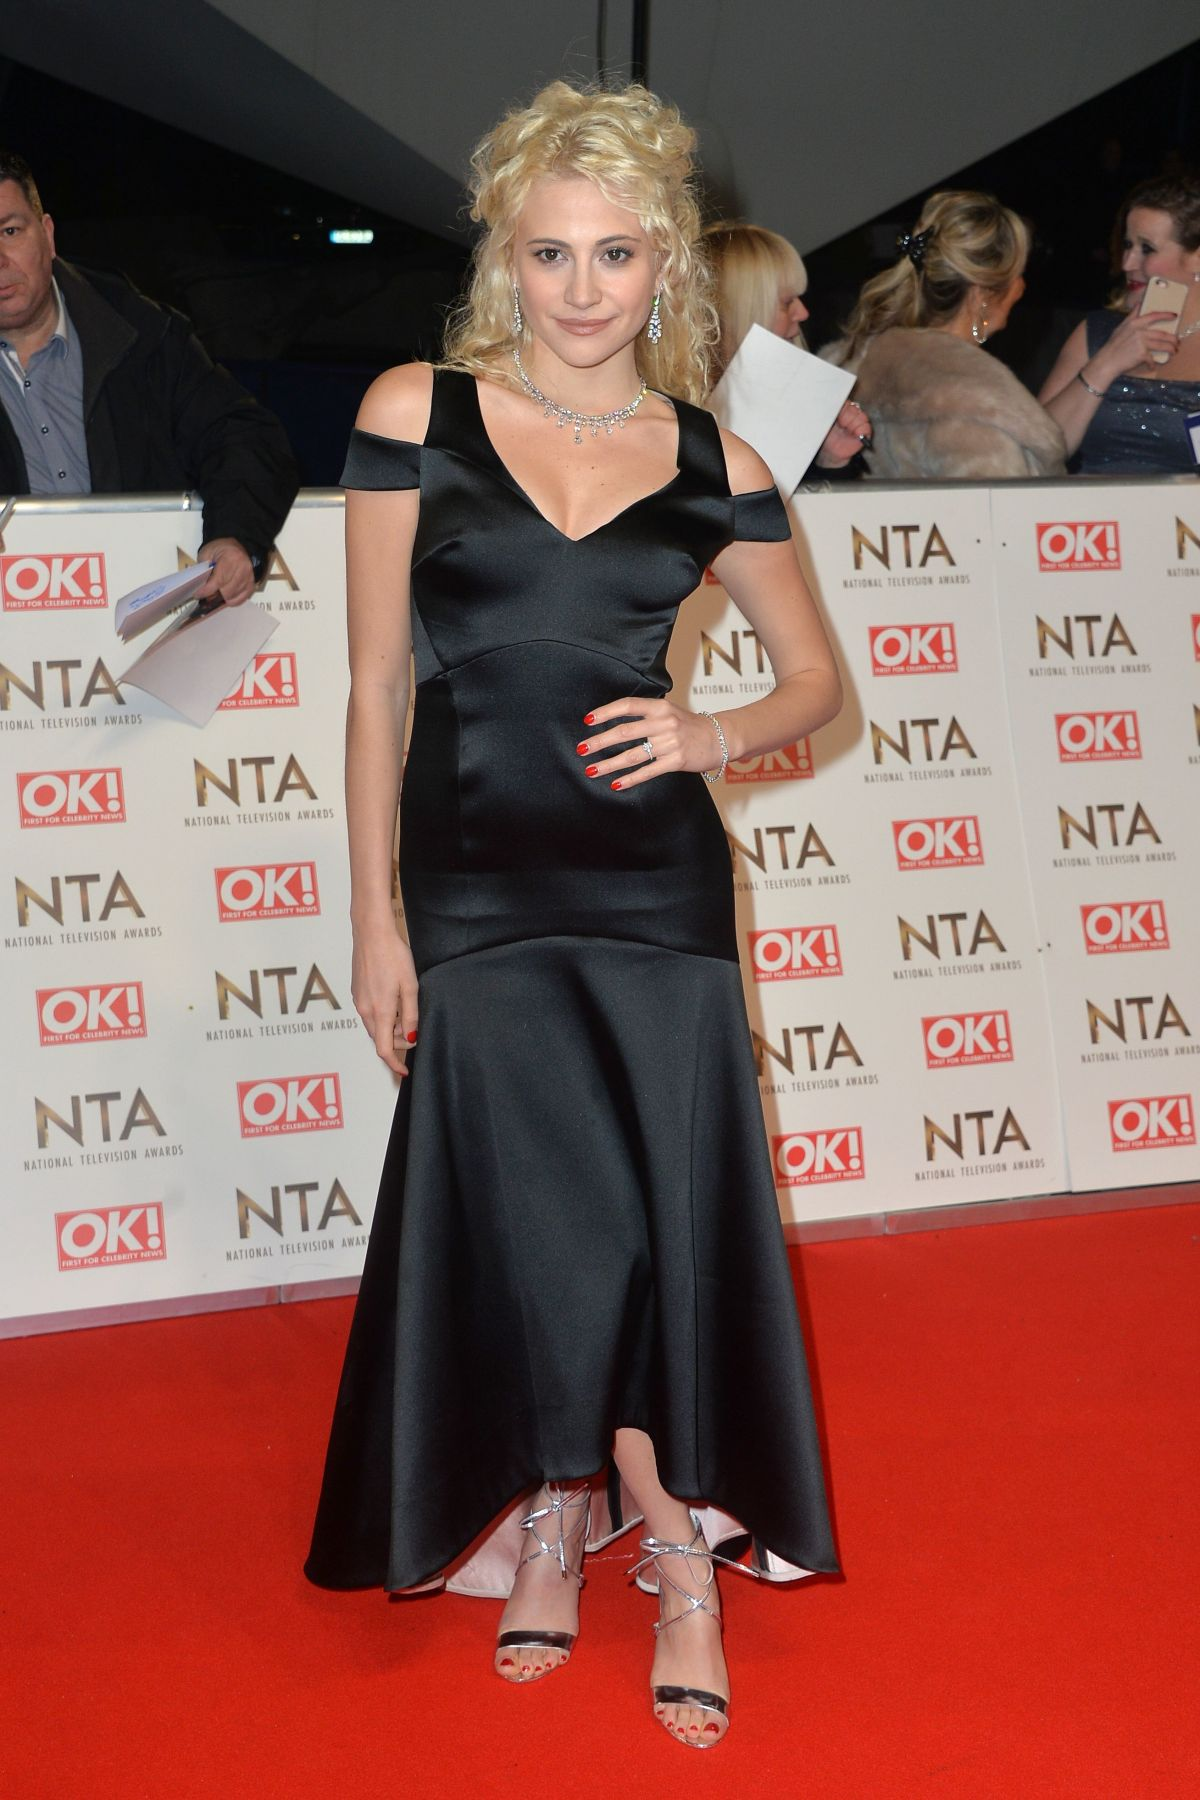 PIXIE LOTT at National Television Awards in London 01/25/2017